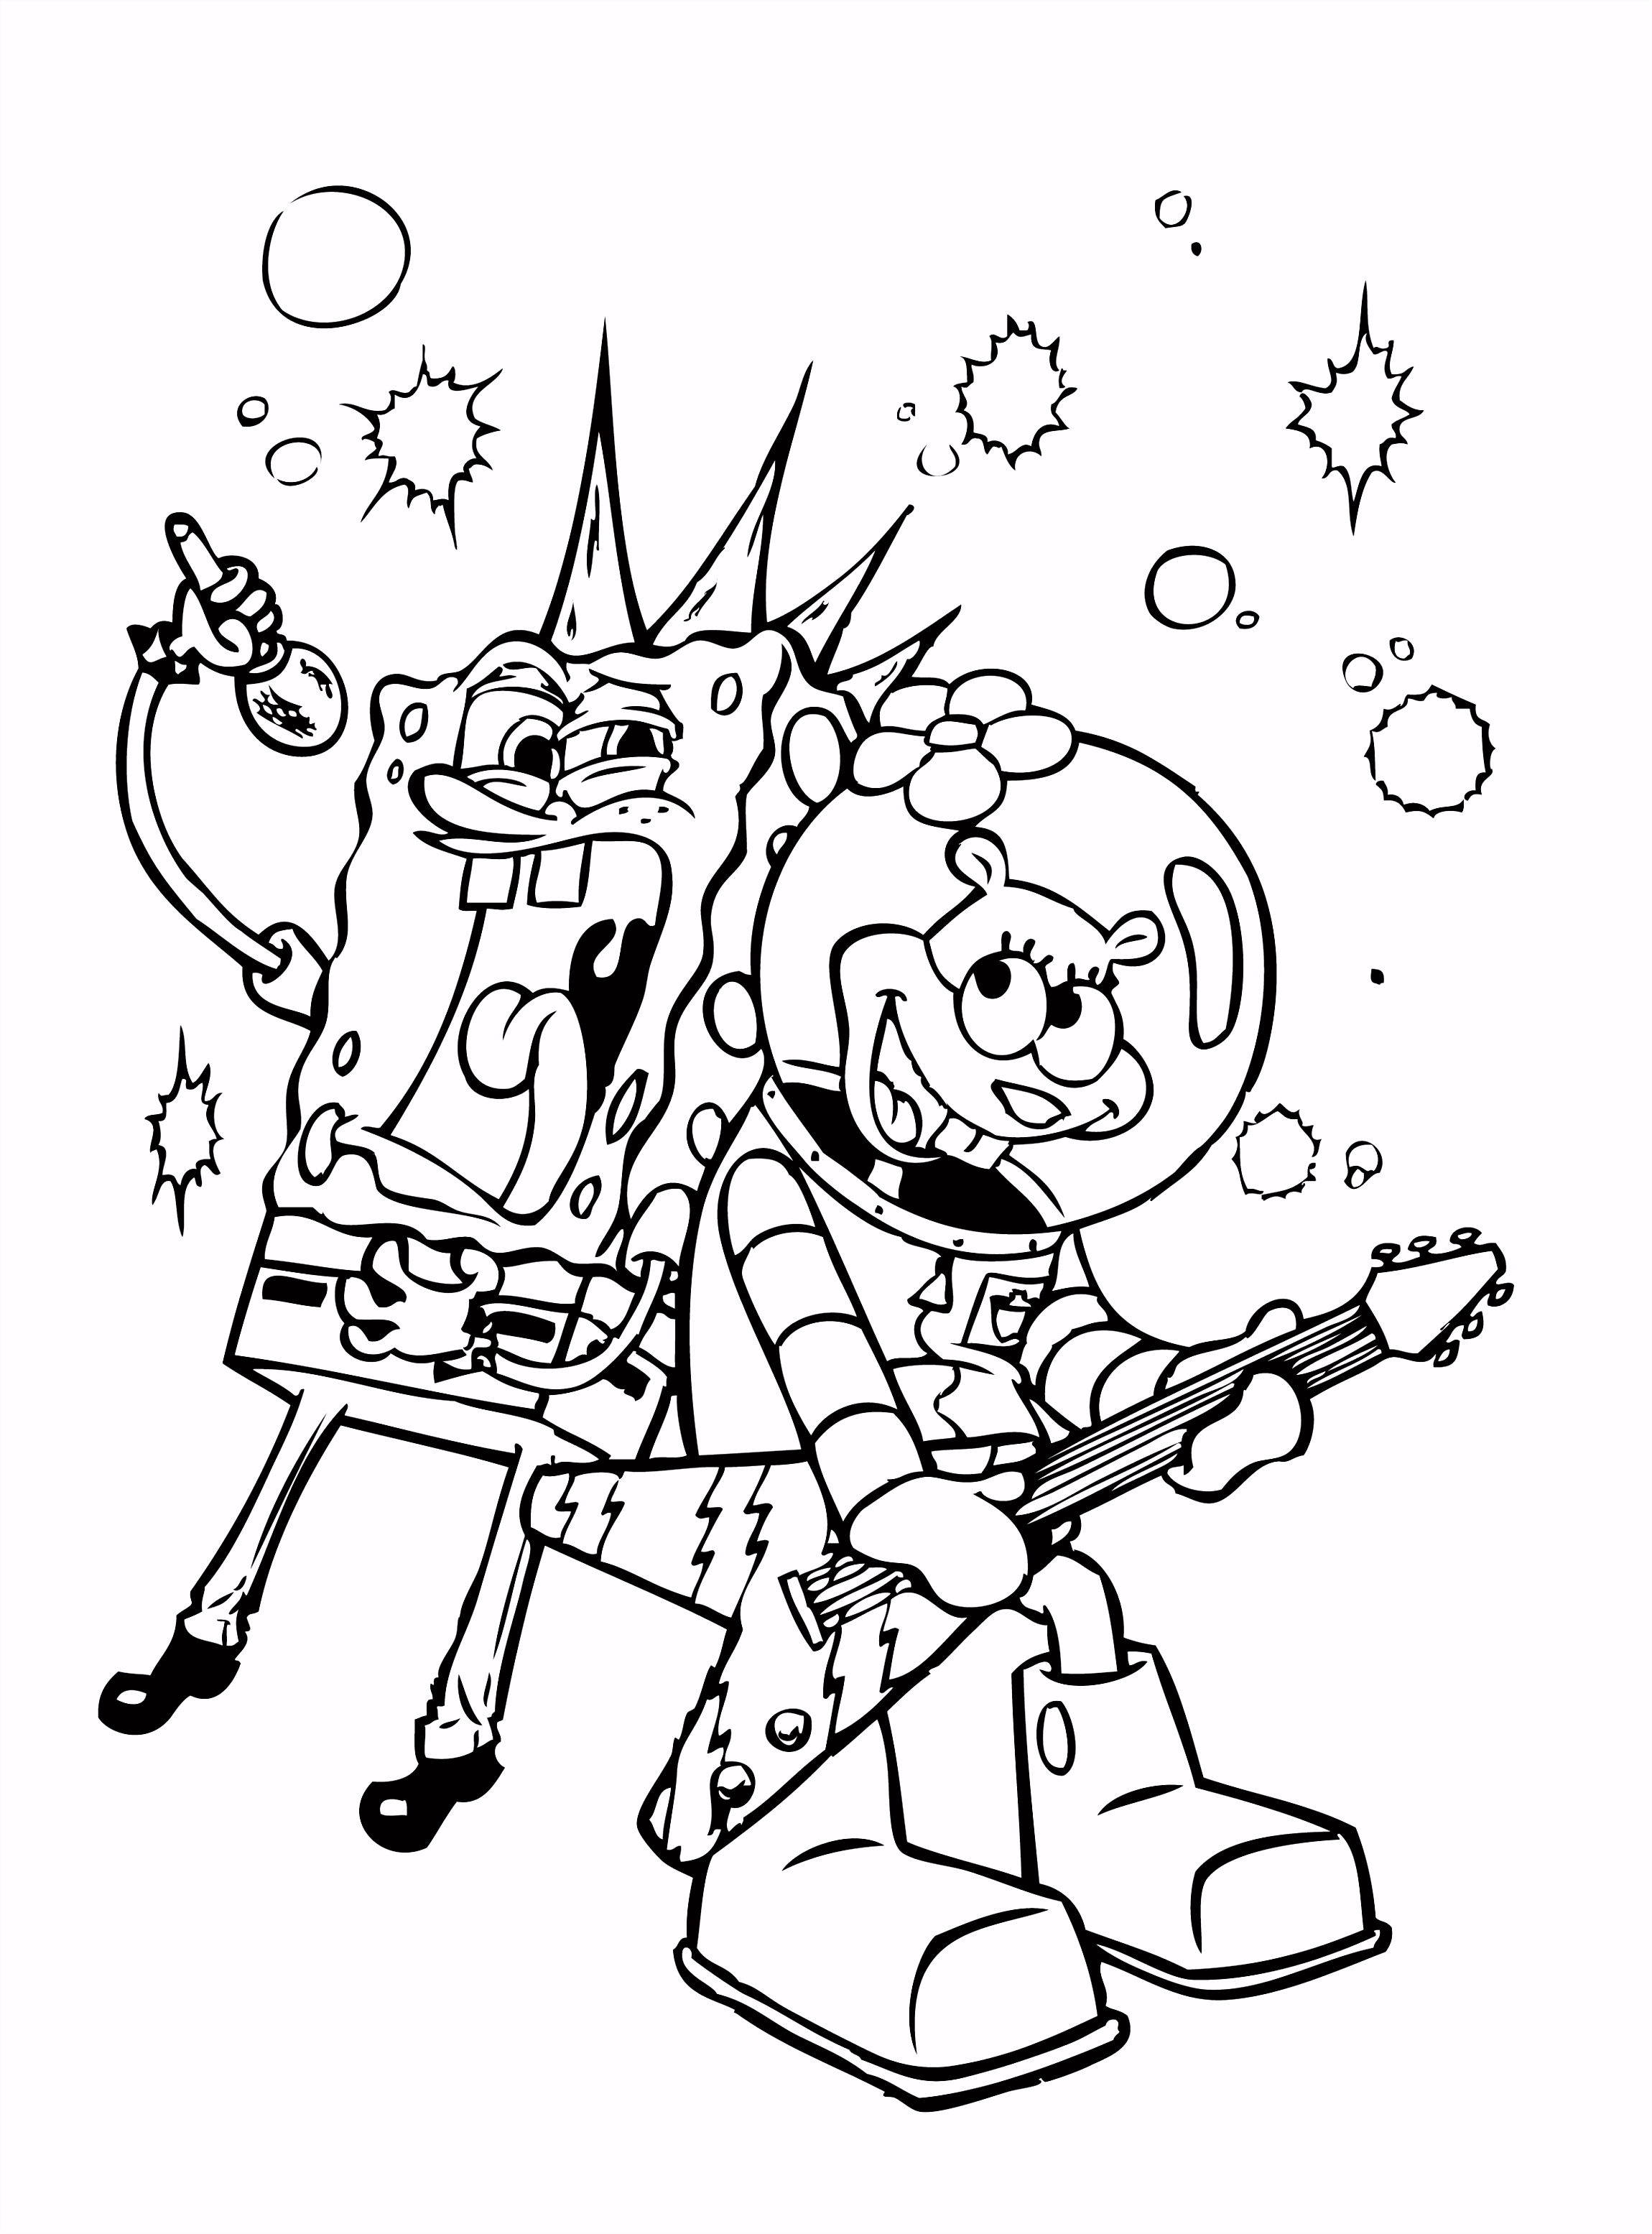 Spongebob Sing Coloring Pages HD Wallpaper Spongebob To